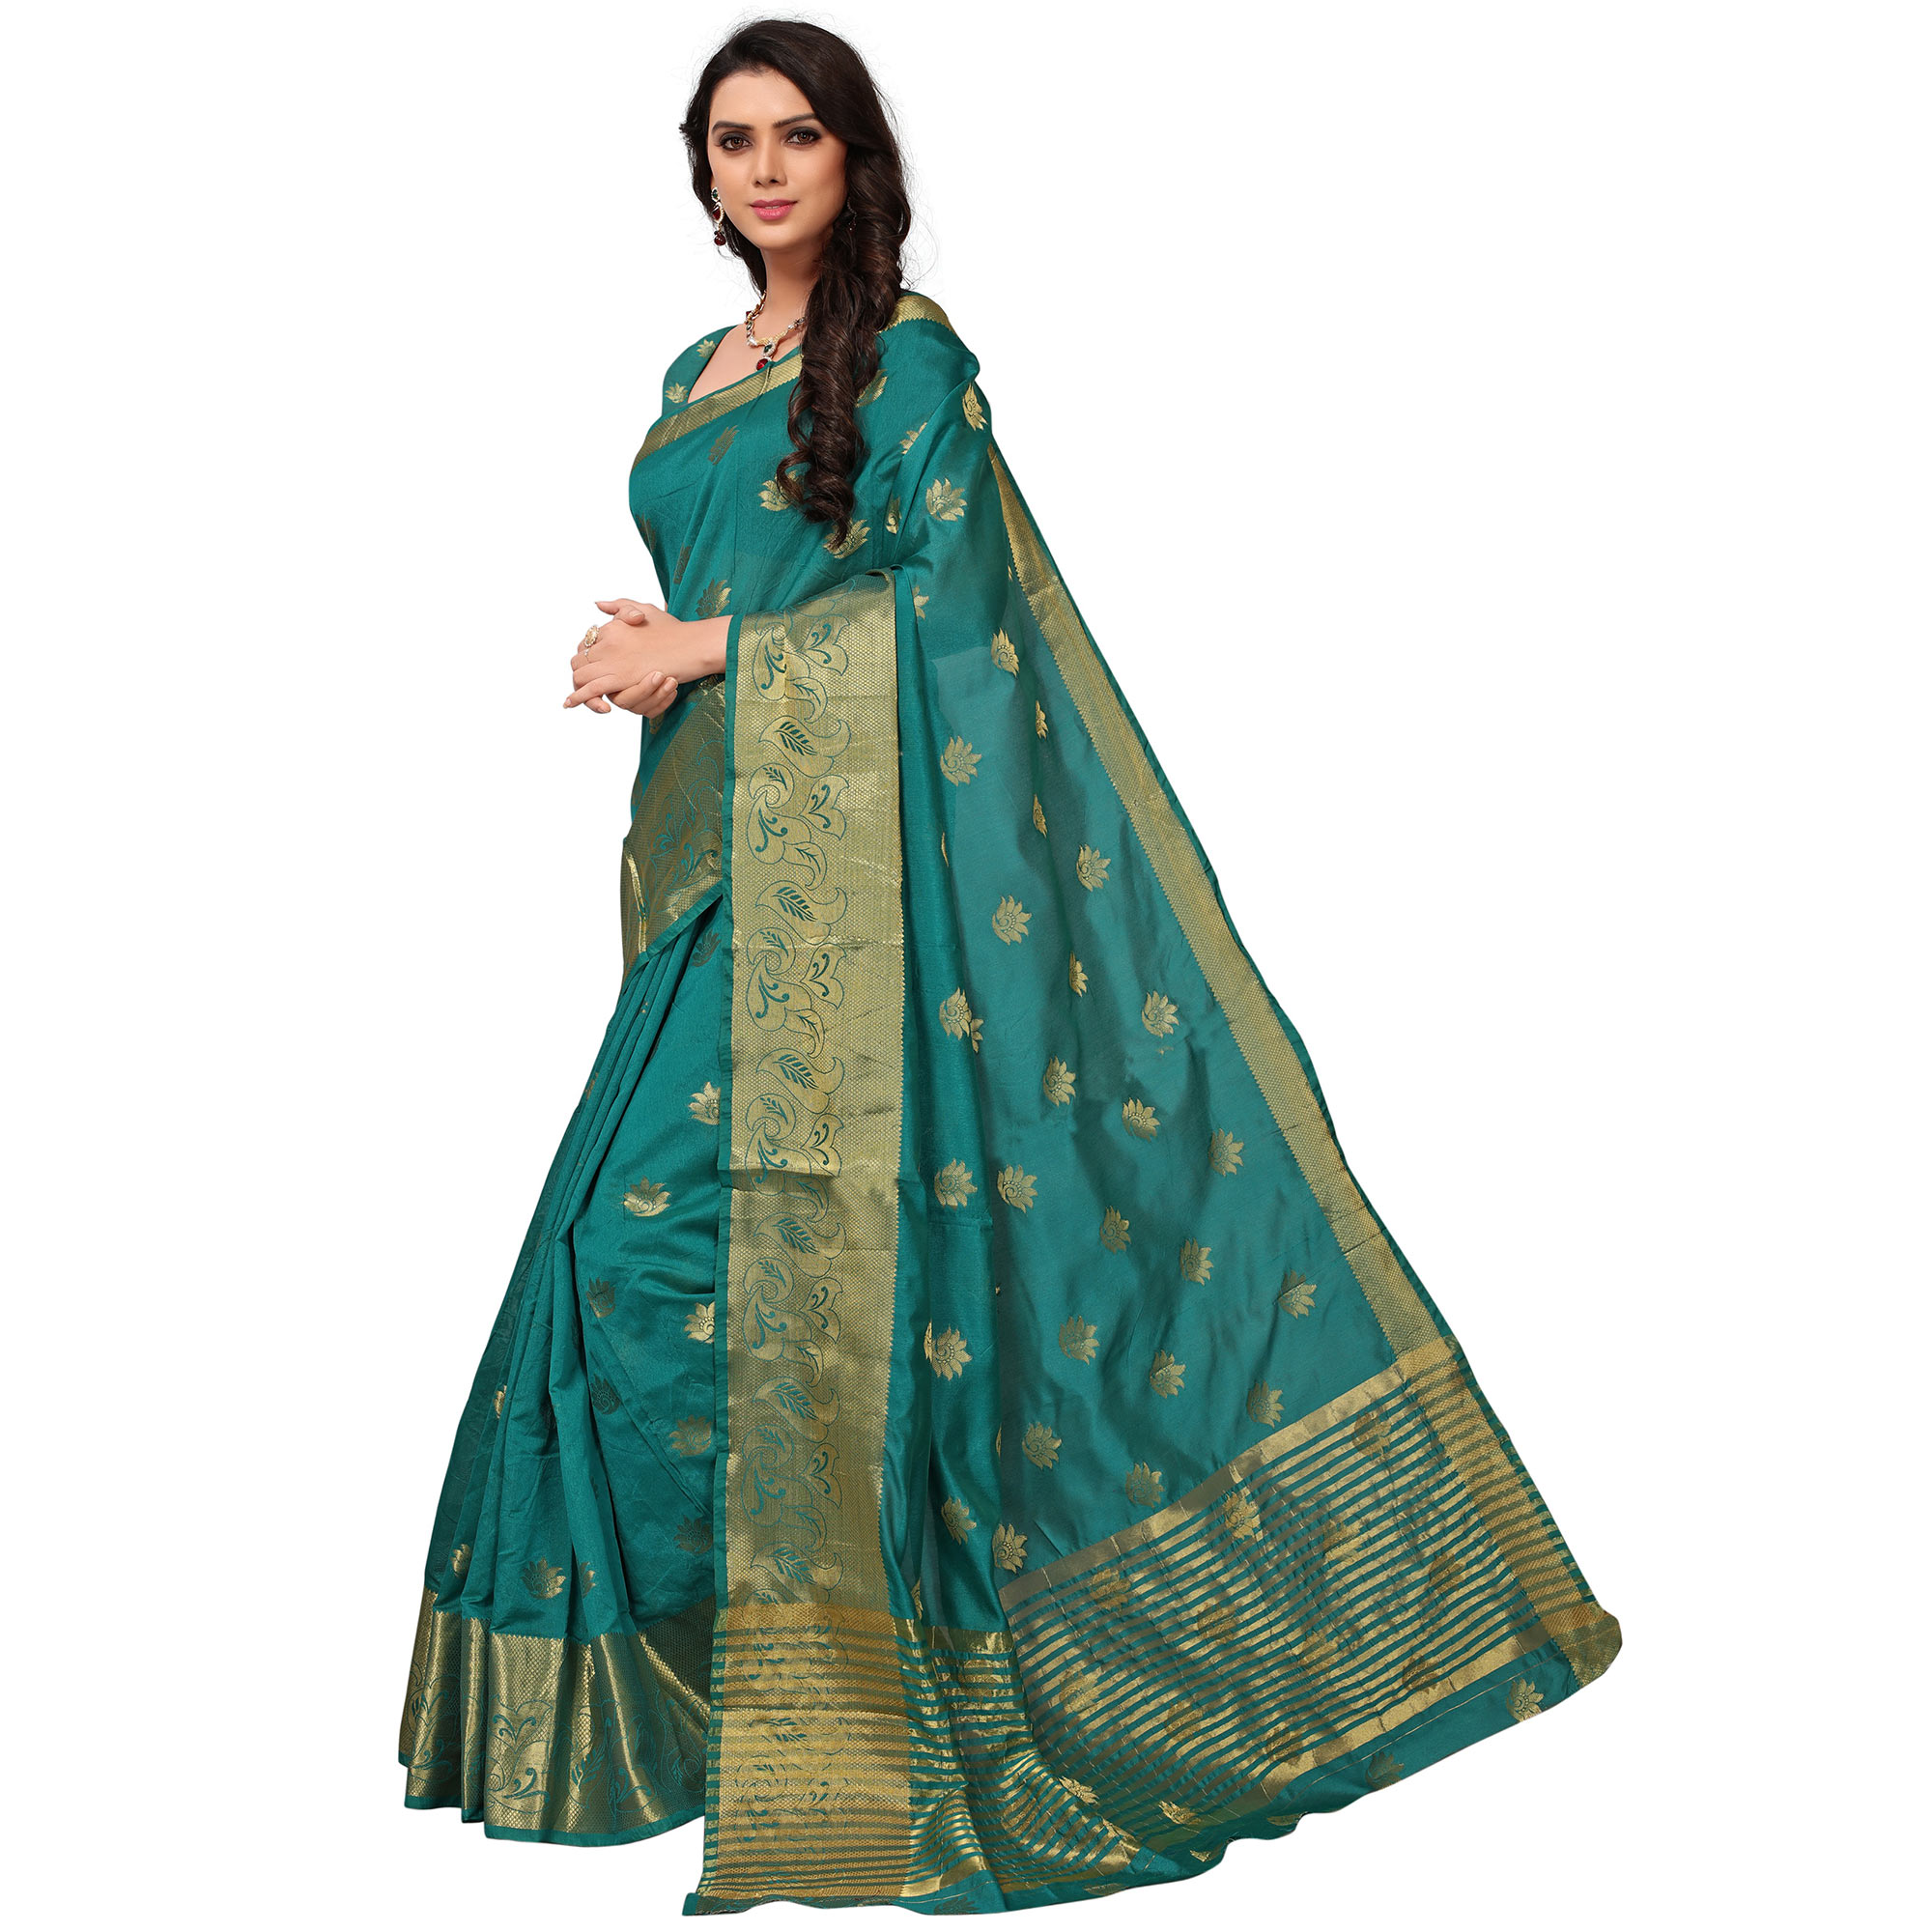 Impressive Turquoise Green Colored Festive Wear Woven Kanjivaram Silk Saree